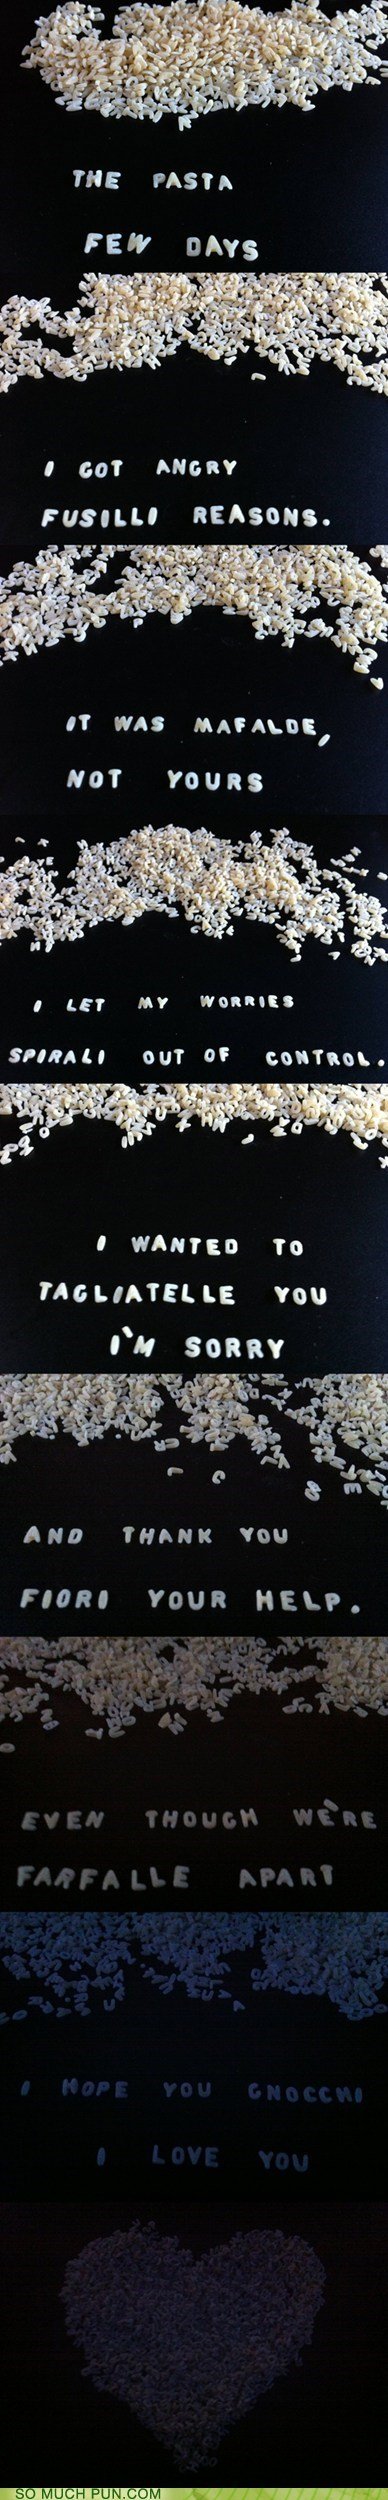 apologizing,apology,pasta,similar sounding,types,variety